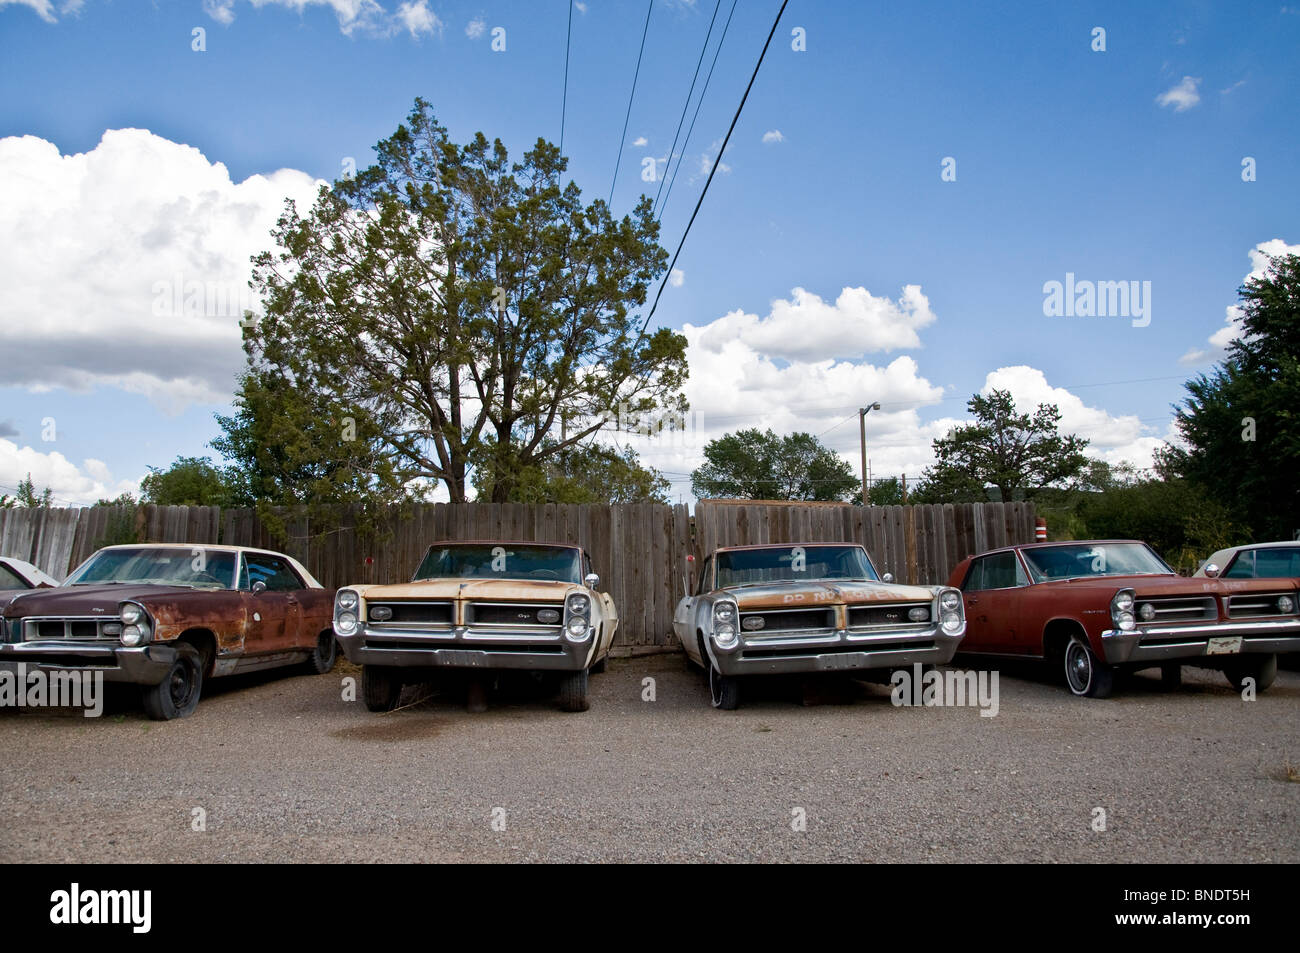 rusty cars for sale tijeras albuquerque new mexico usa stock photo royalty free image. Black Bedroom Furniture Sets. Home Design Ideas